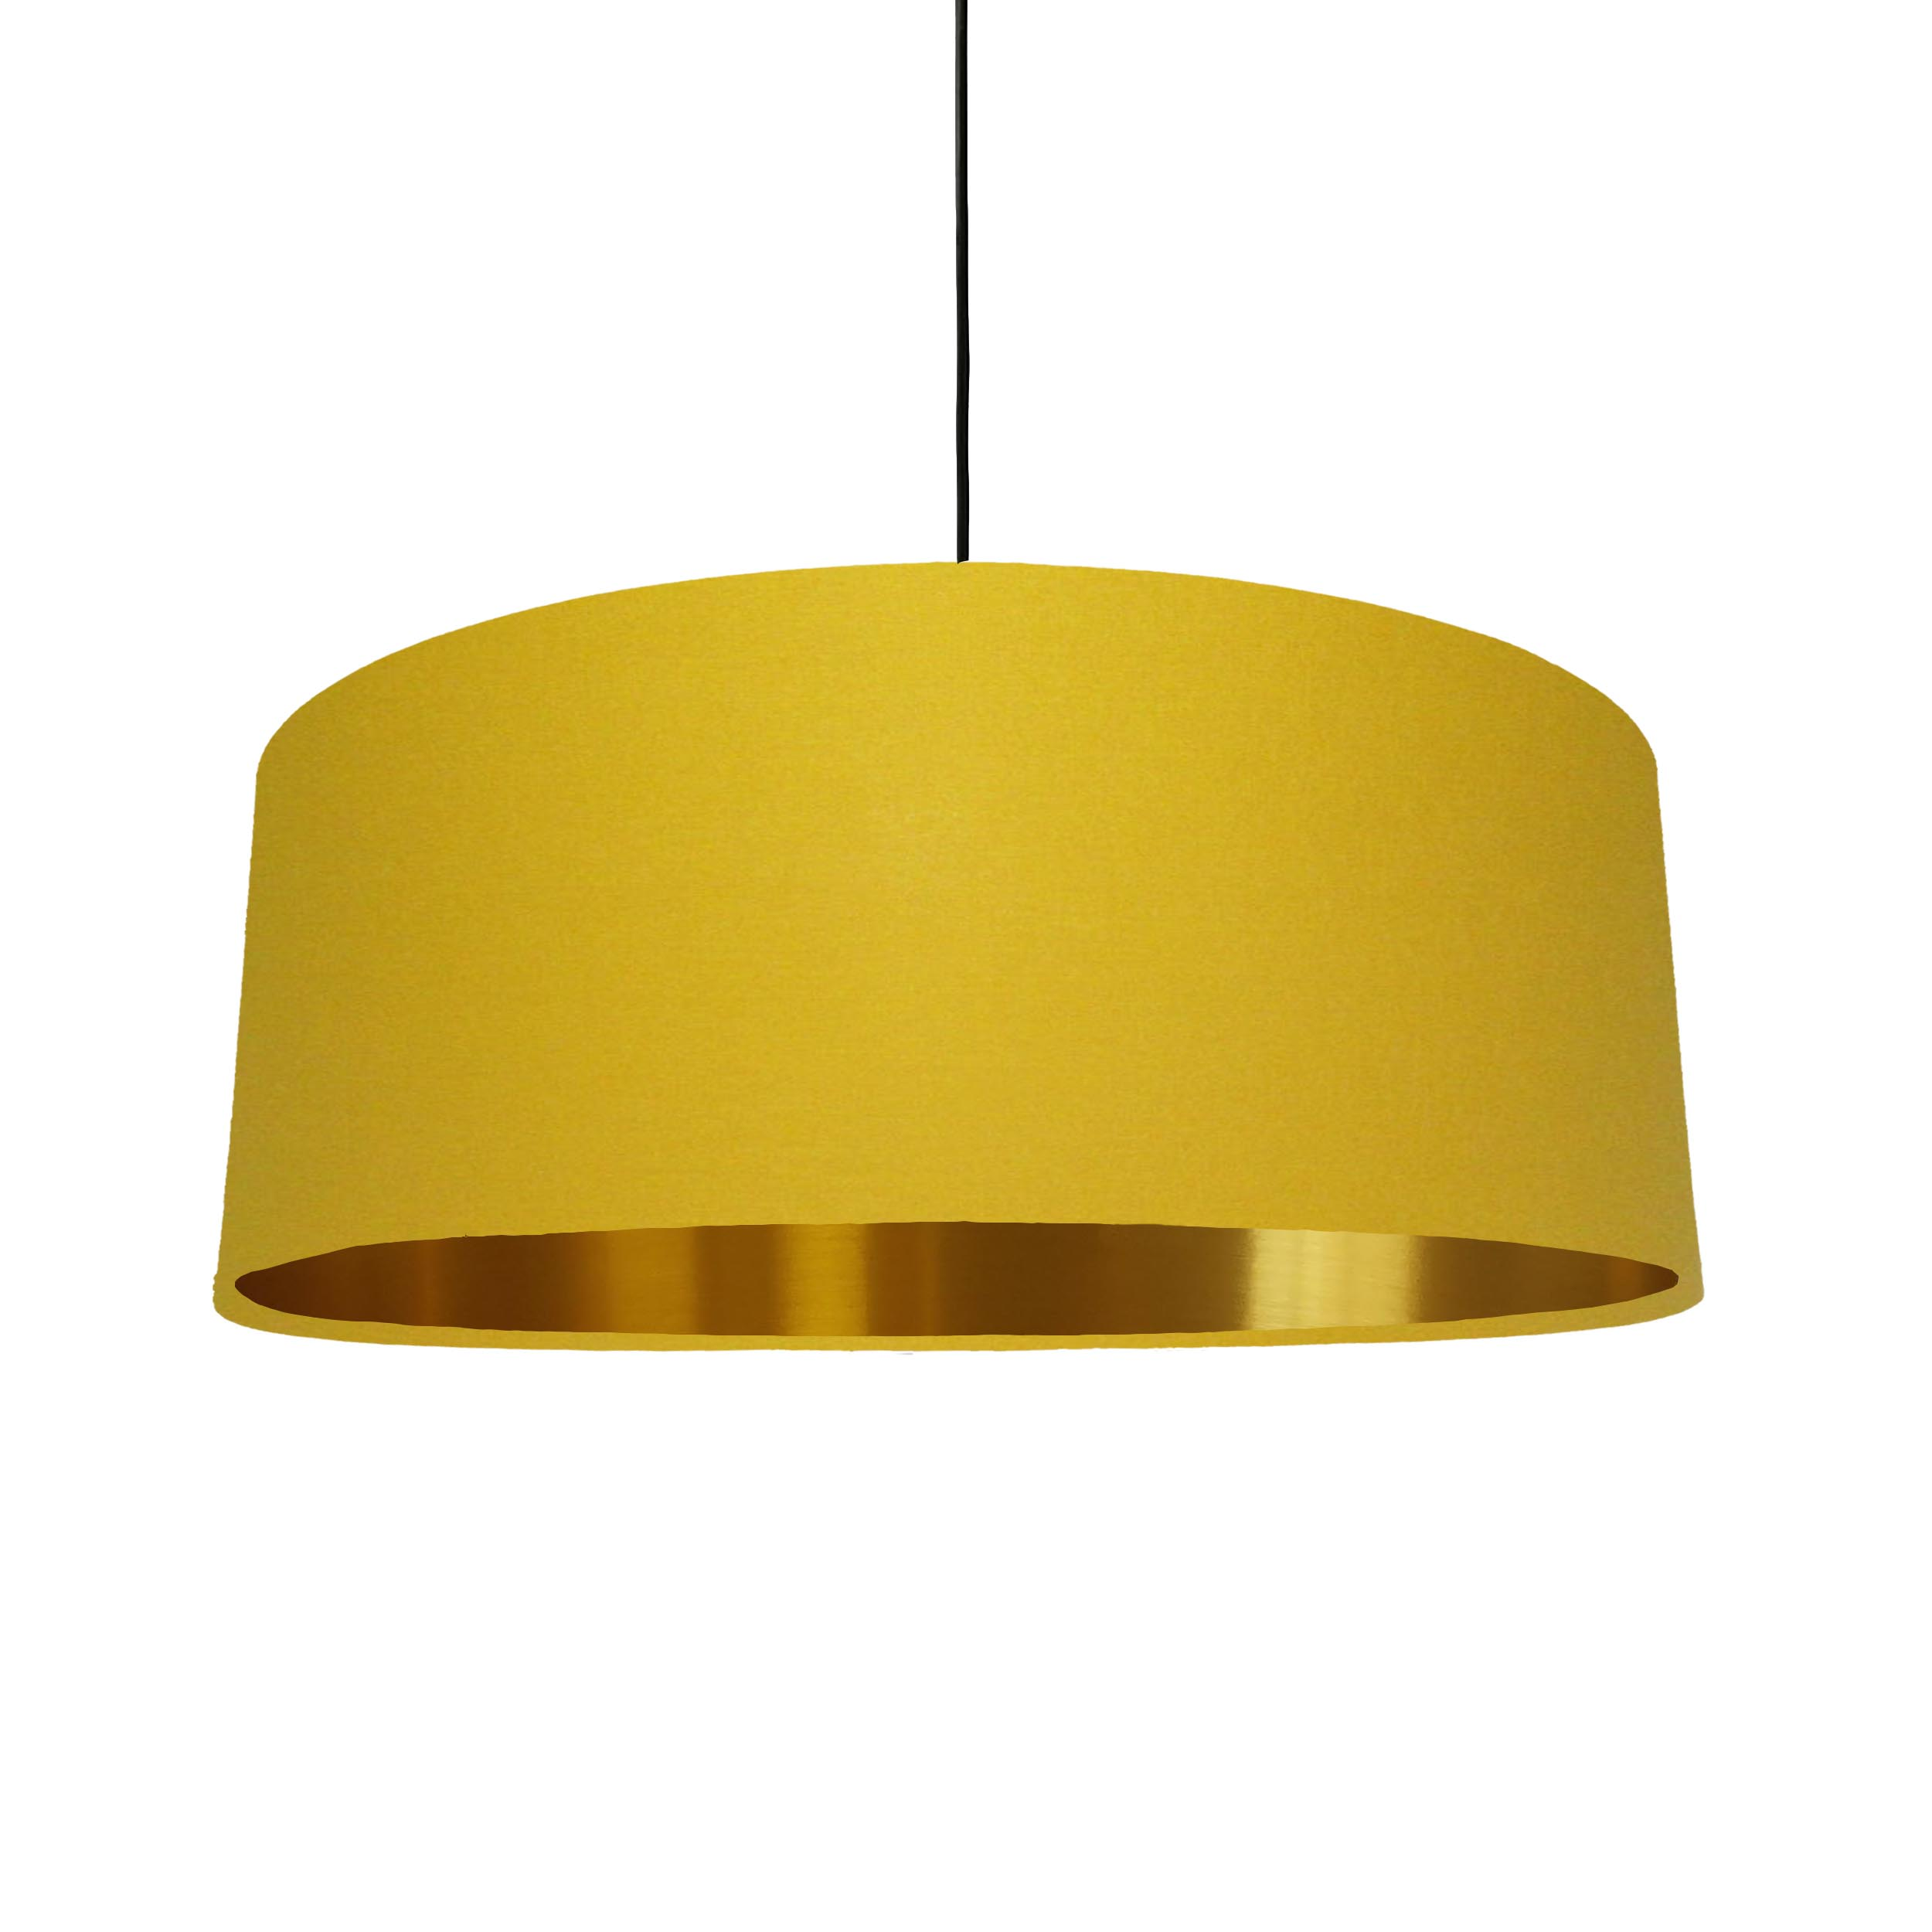 Extra Large Lampshade in Mustard Cotton and a Brushed Gold Lining